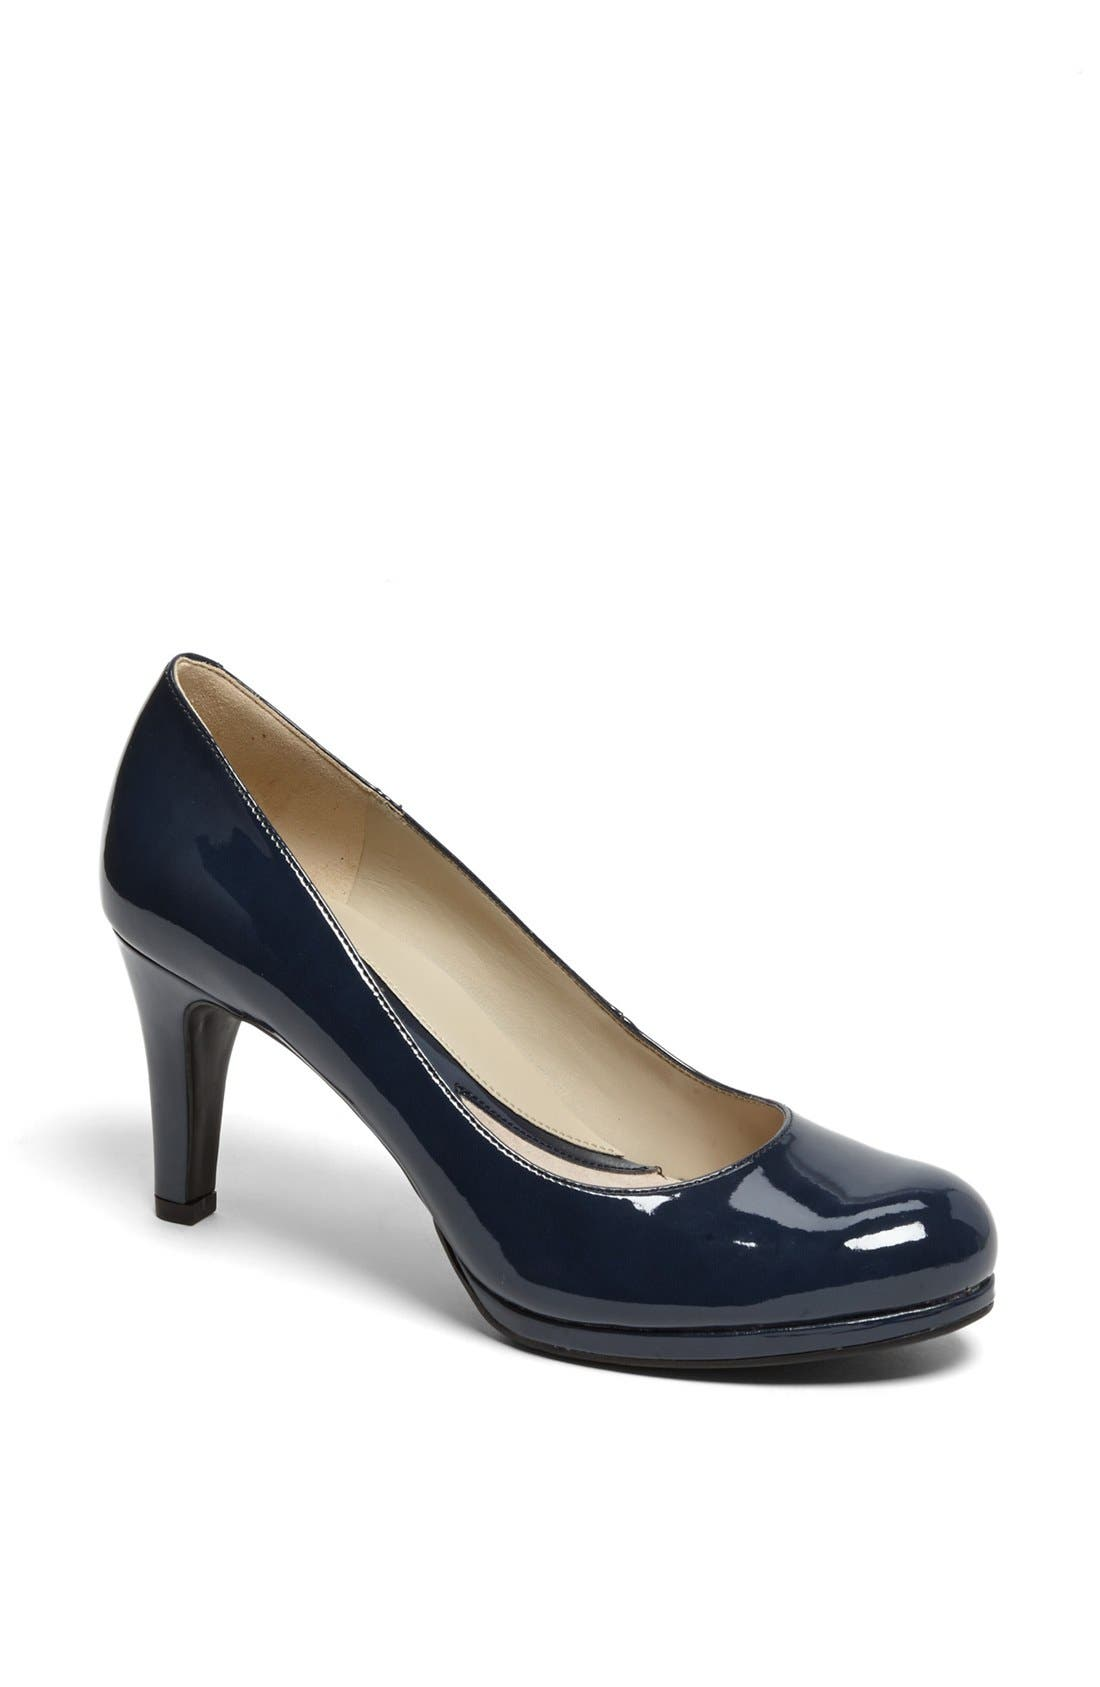 Alternate Image 1 Selected - Naturalizer 'Lennox' Pump